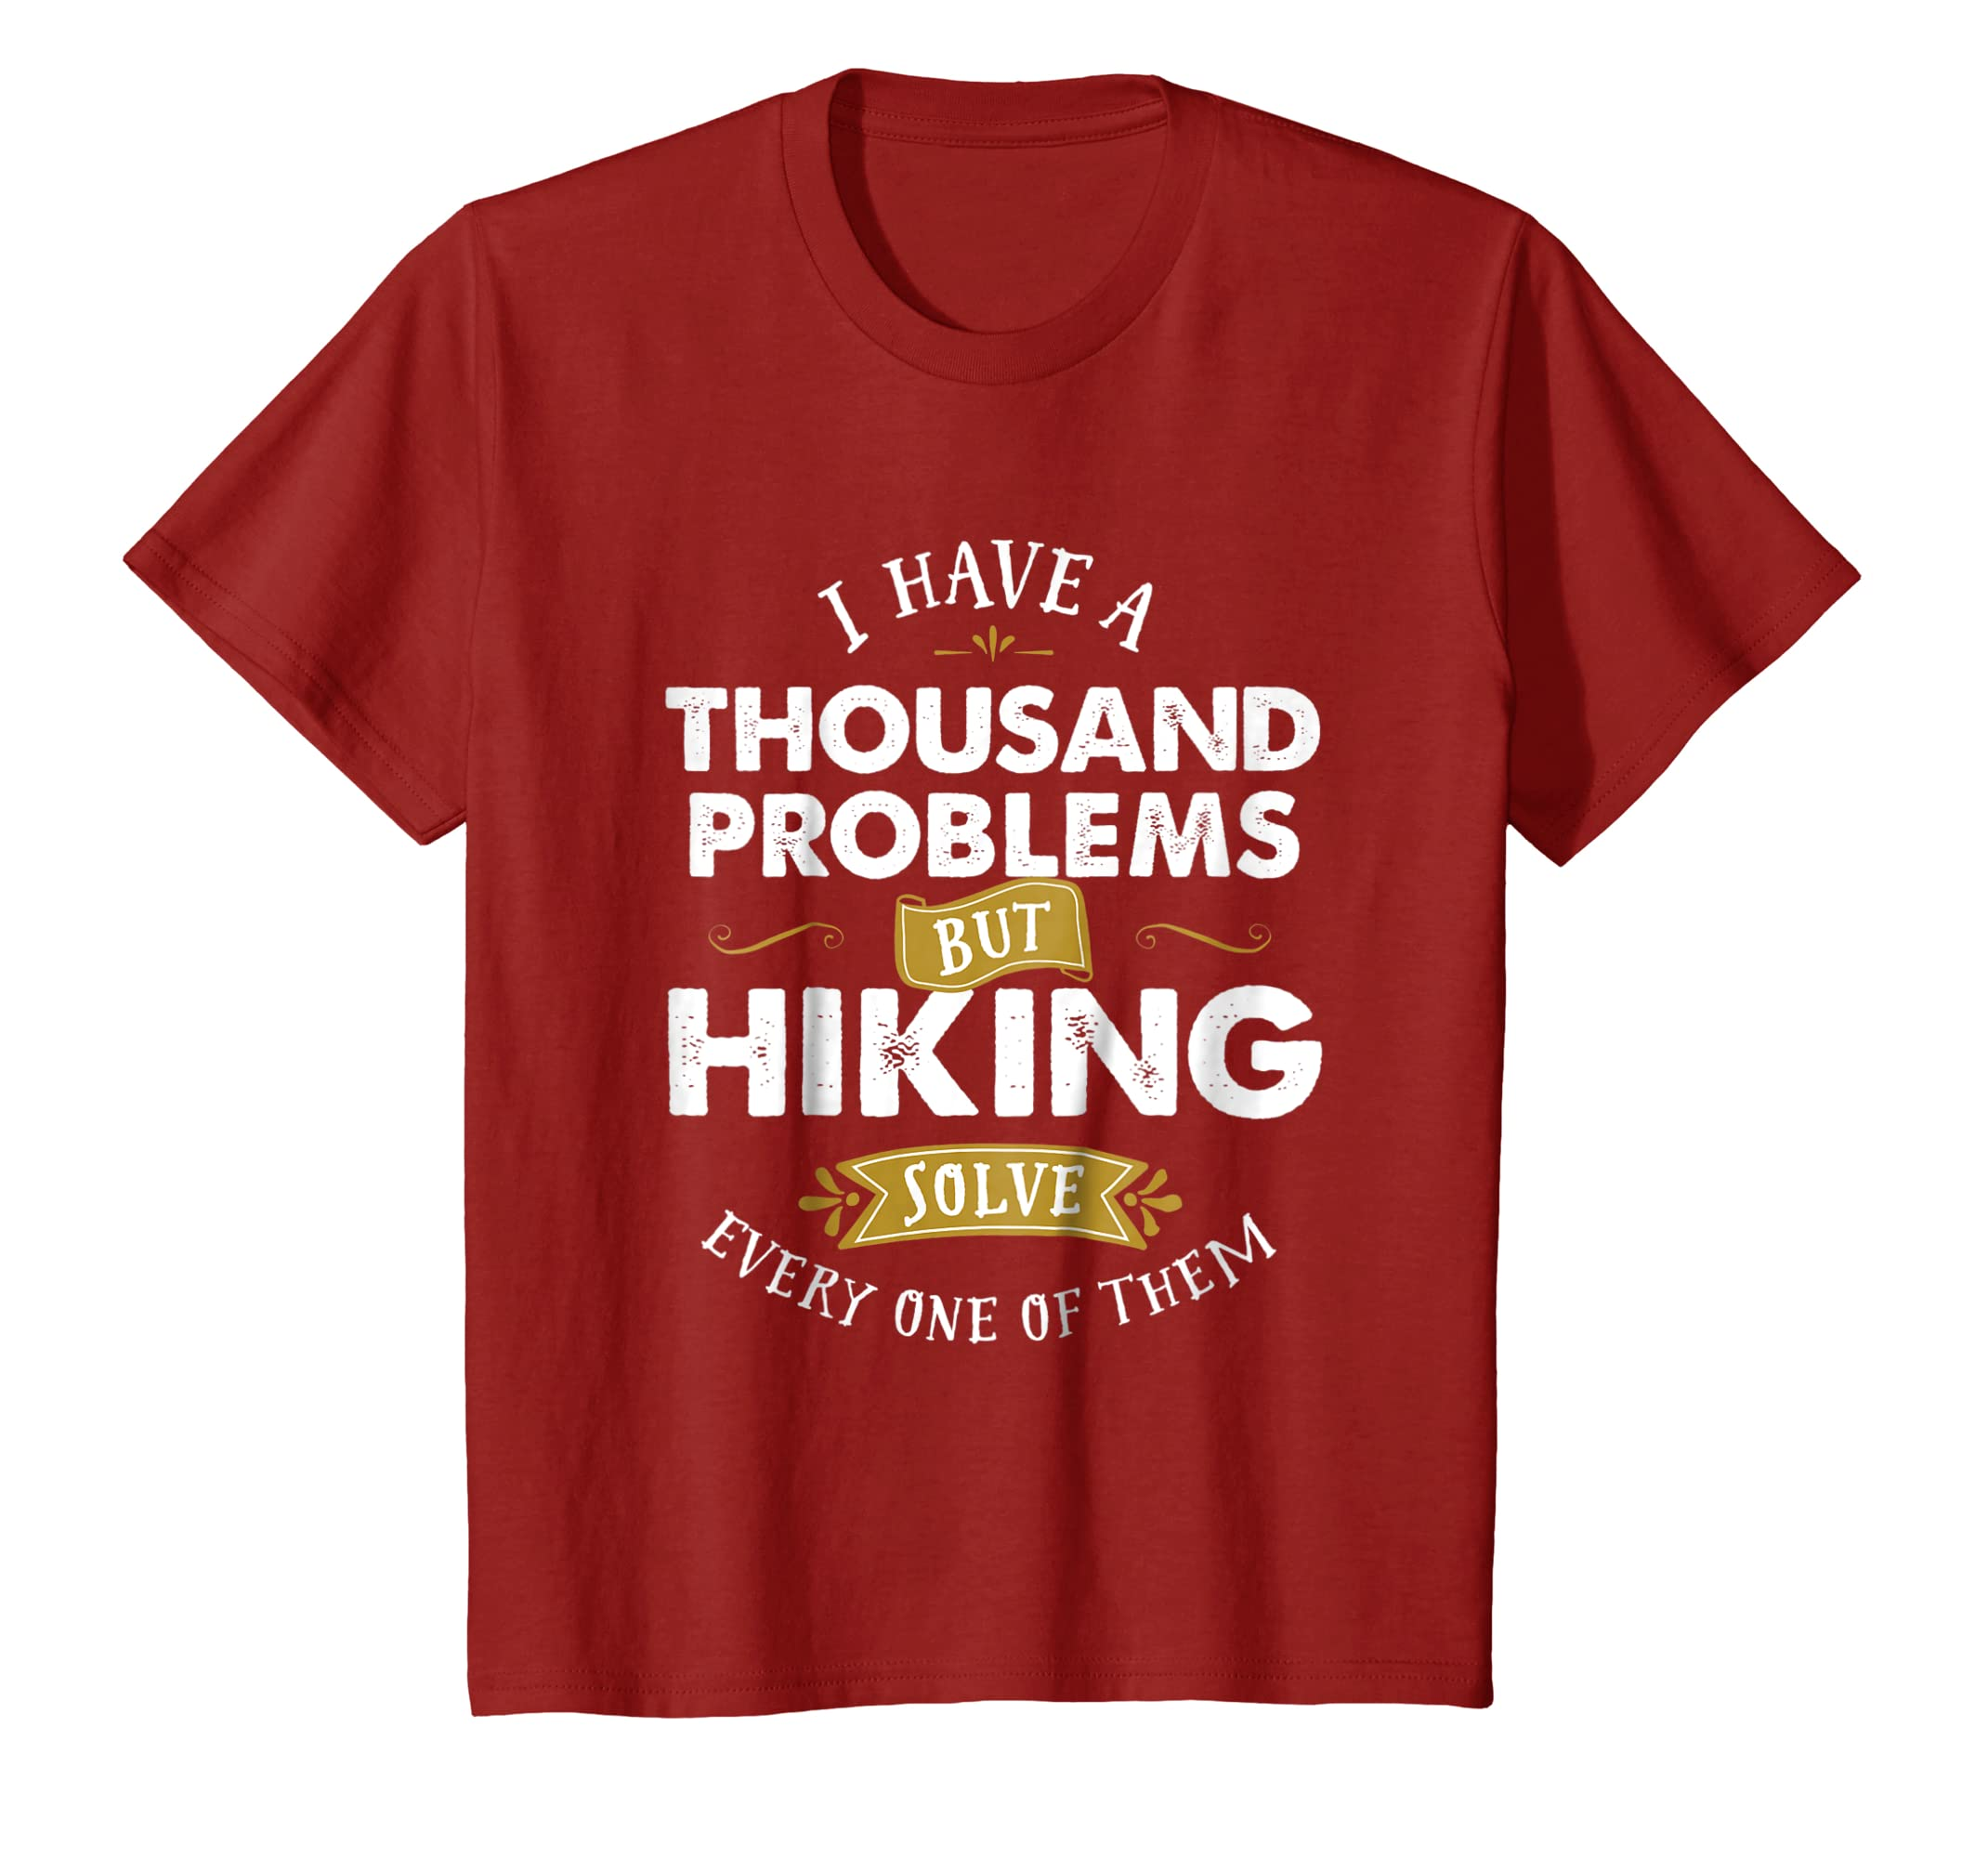 aa2272dfd6 Amazon.com: Funny Hiker T-Shirt Hiking Solve Thousand Problems: Clothing